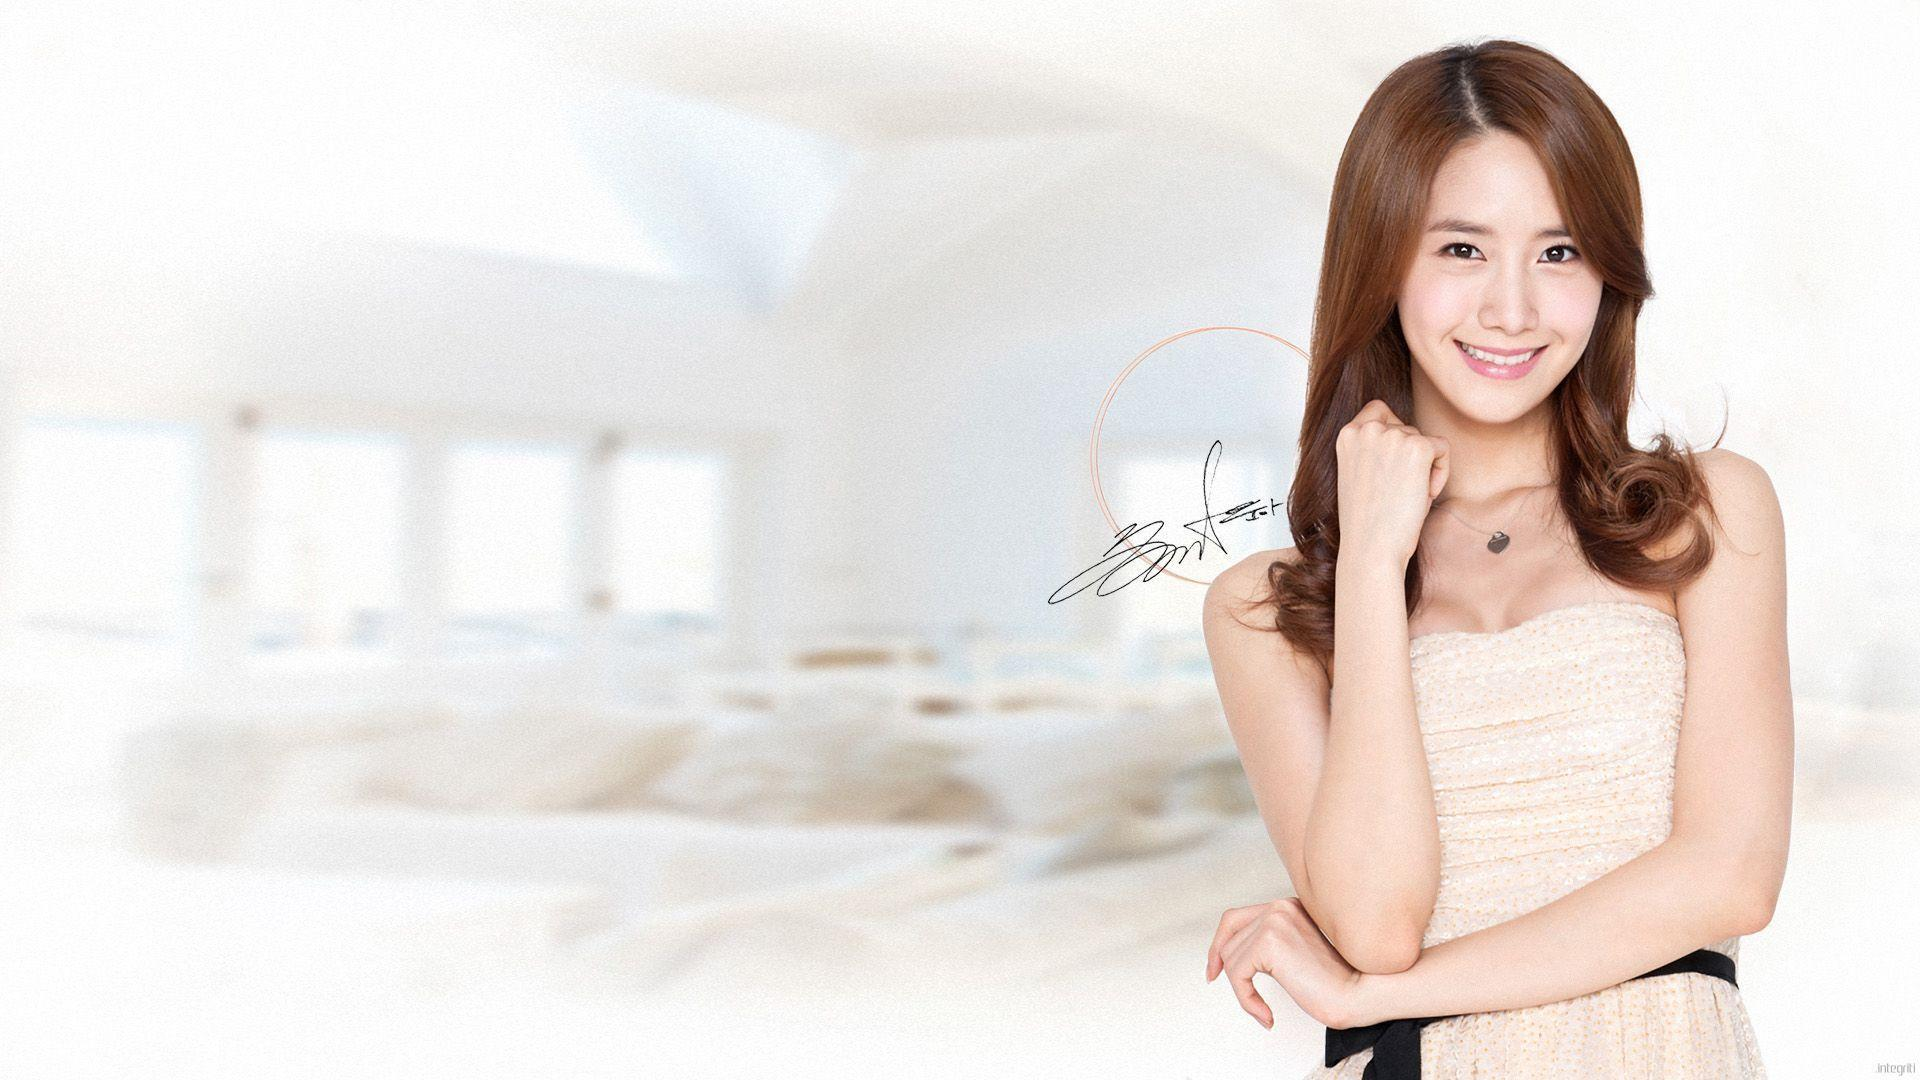 Snsd Hd Wallpaper 1920x1080 Yoona Wallpapers 2015 Wallpaper Cave